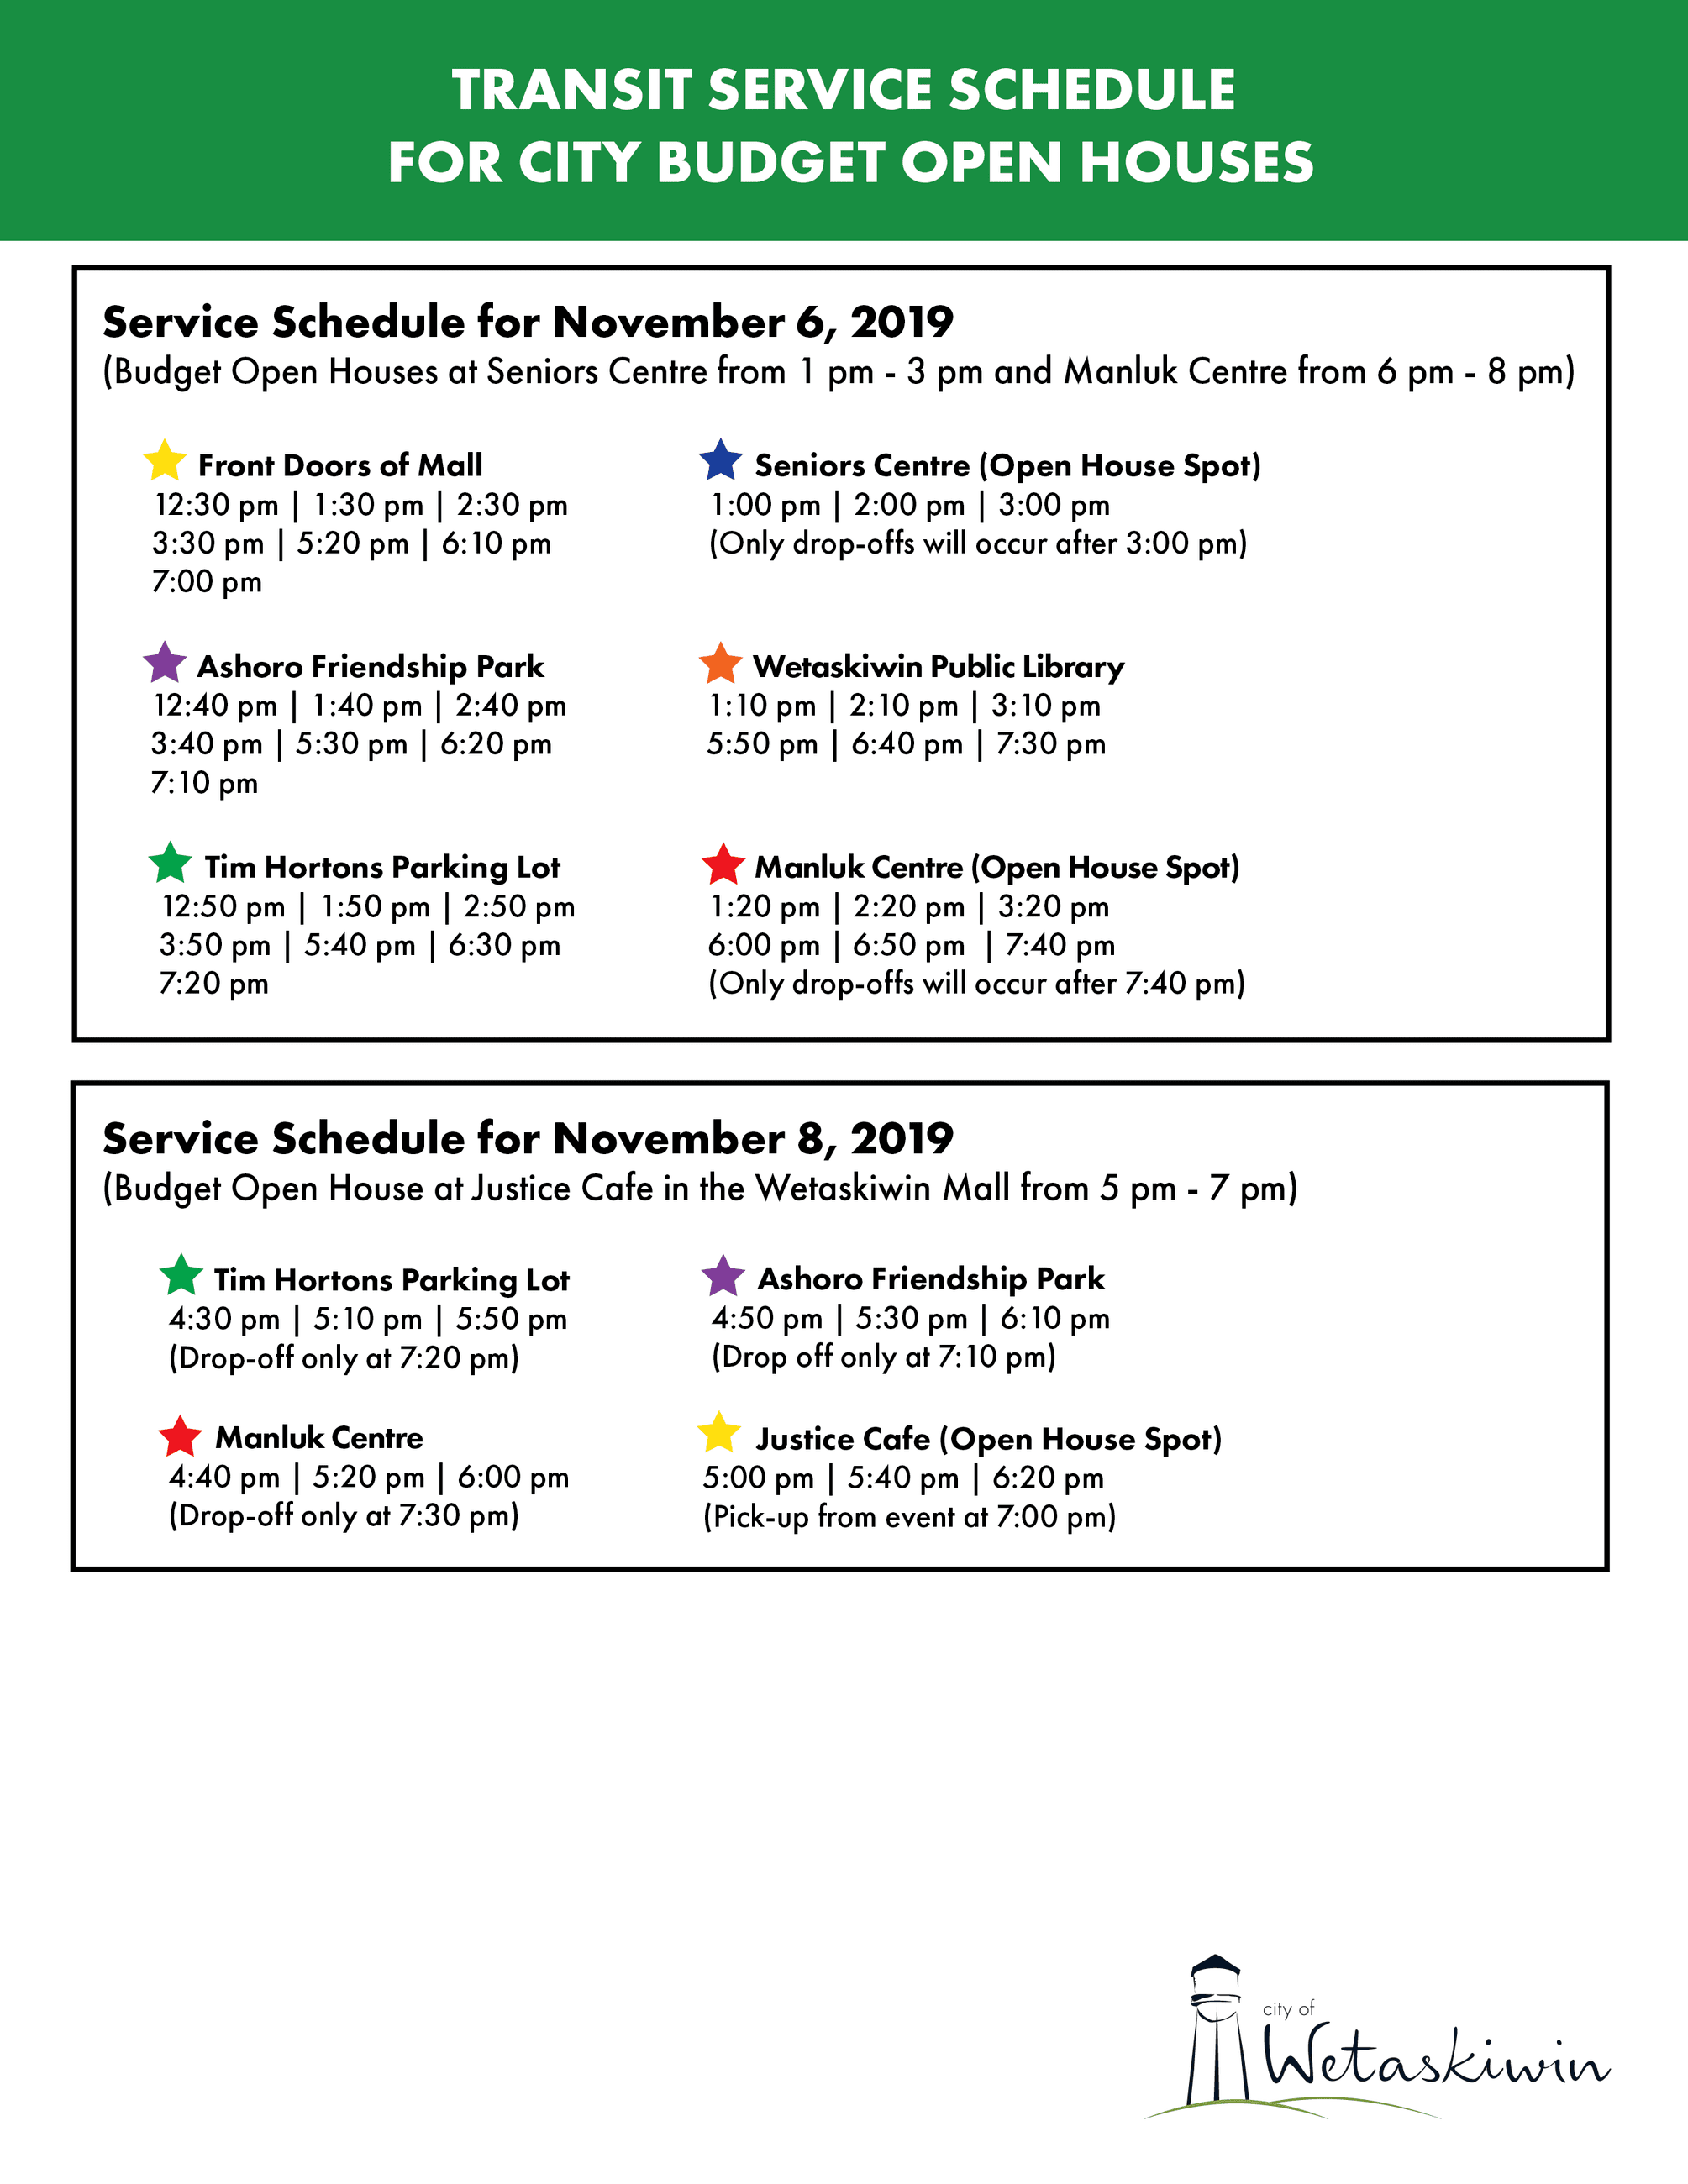 Service Locations for Budget Open Houses - Transit Schedule Nov. 6 and 8